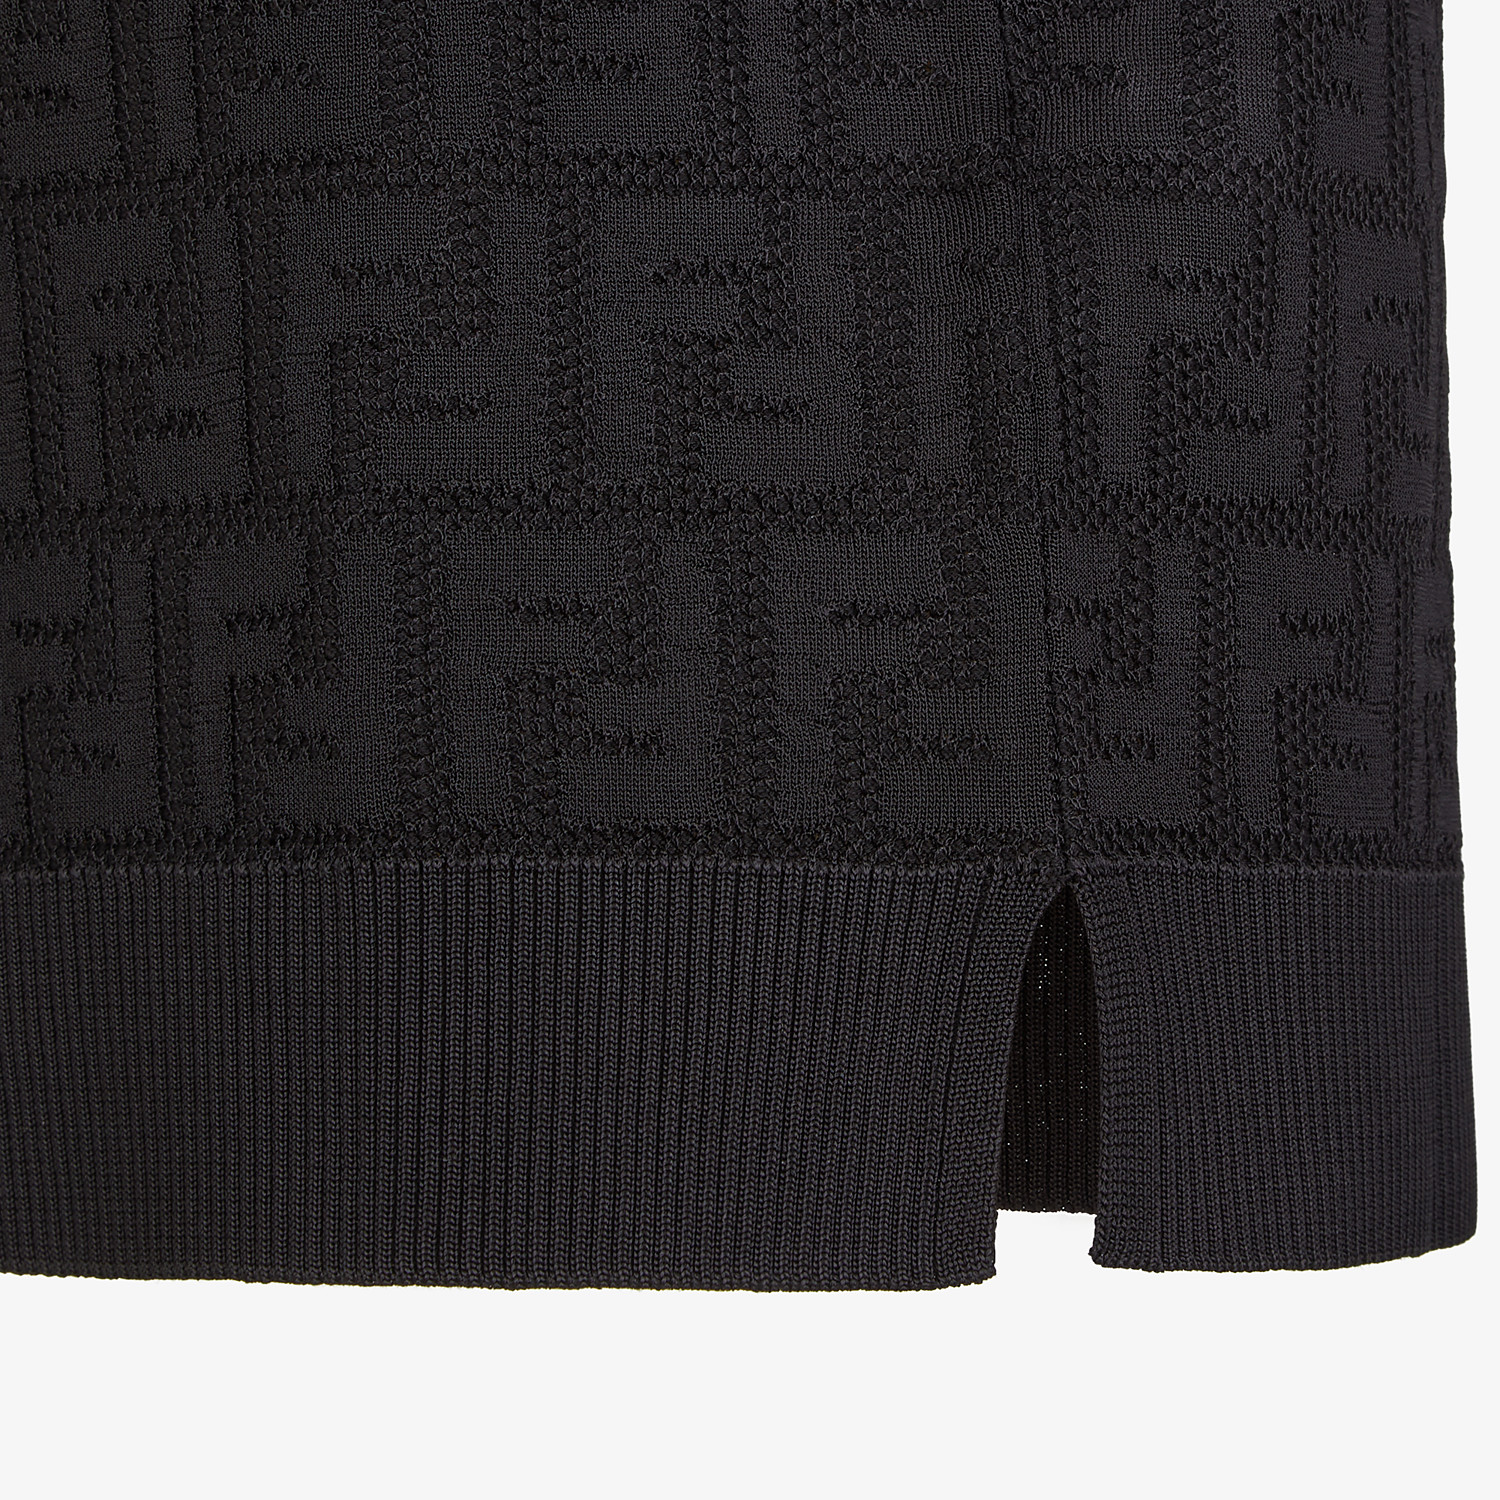 FENDI SWEATER - Black cotton and viscose sweater - view 3 detail